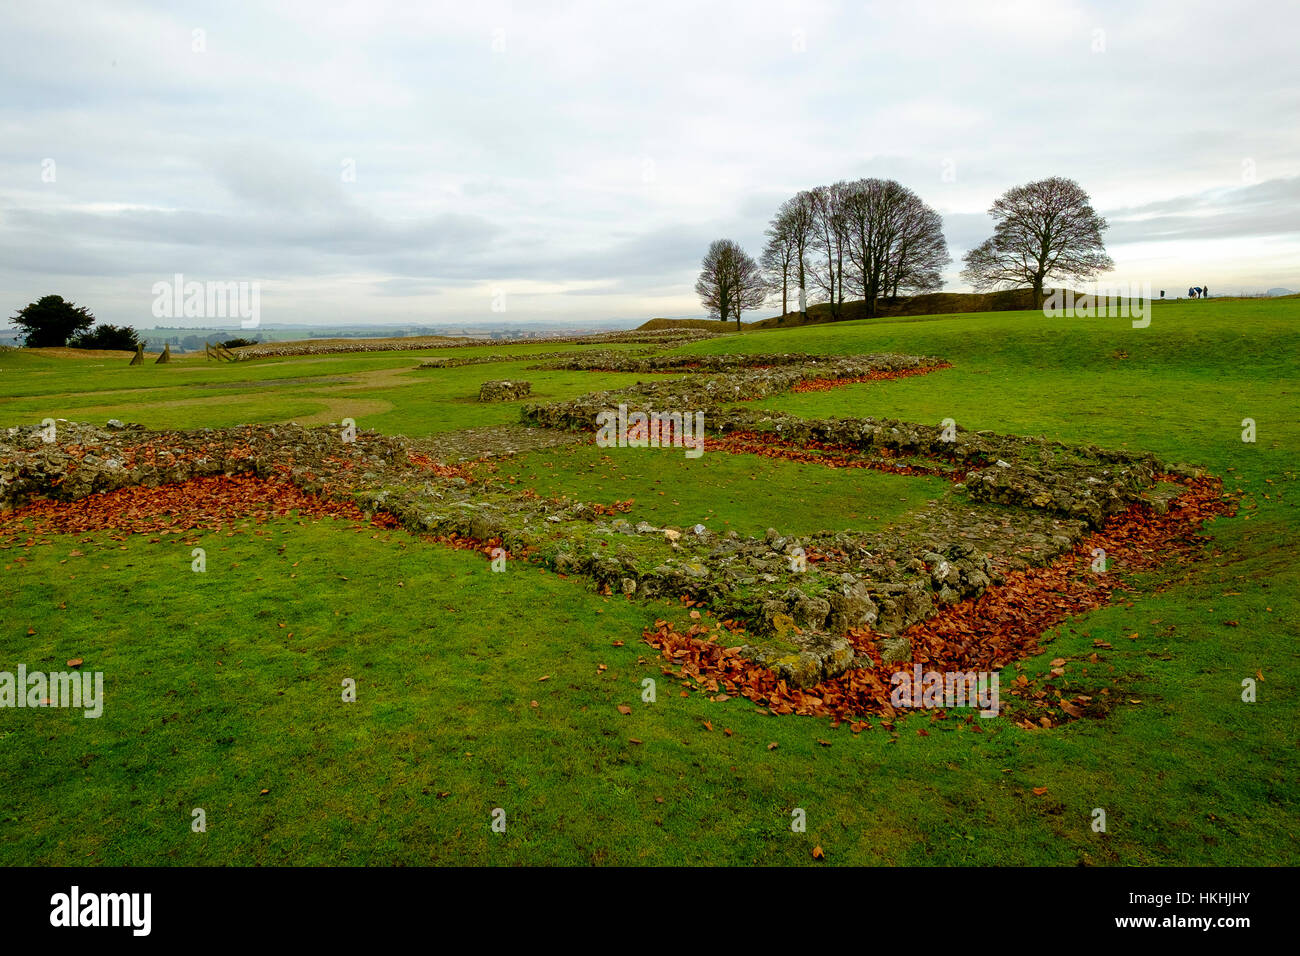 The ruins of the old cathedral within the grounds of Old Sarum, Salisbury stand in winter amidst red fallen leaves Stock Photo